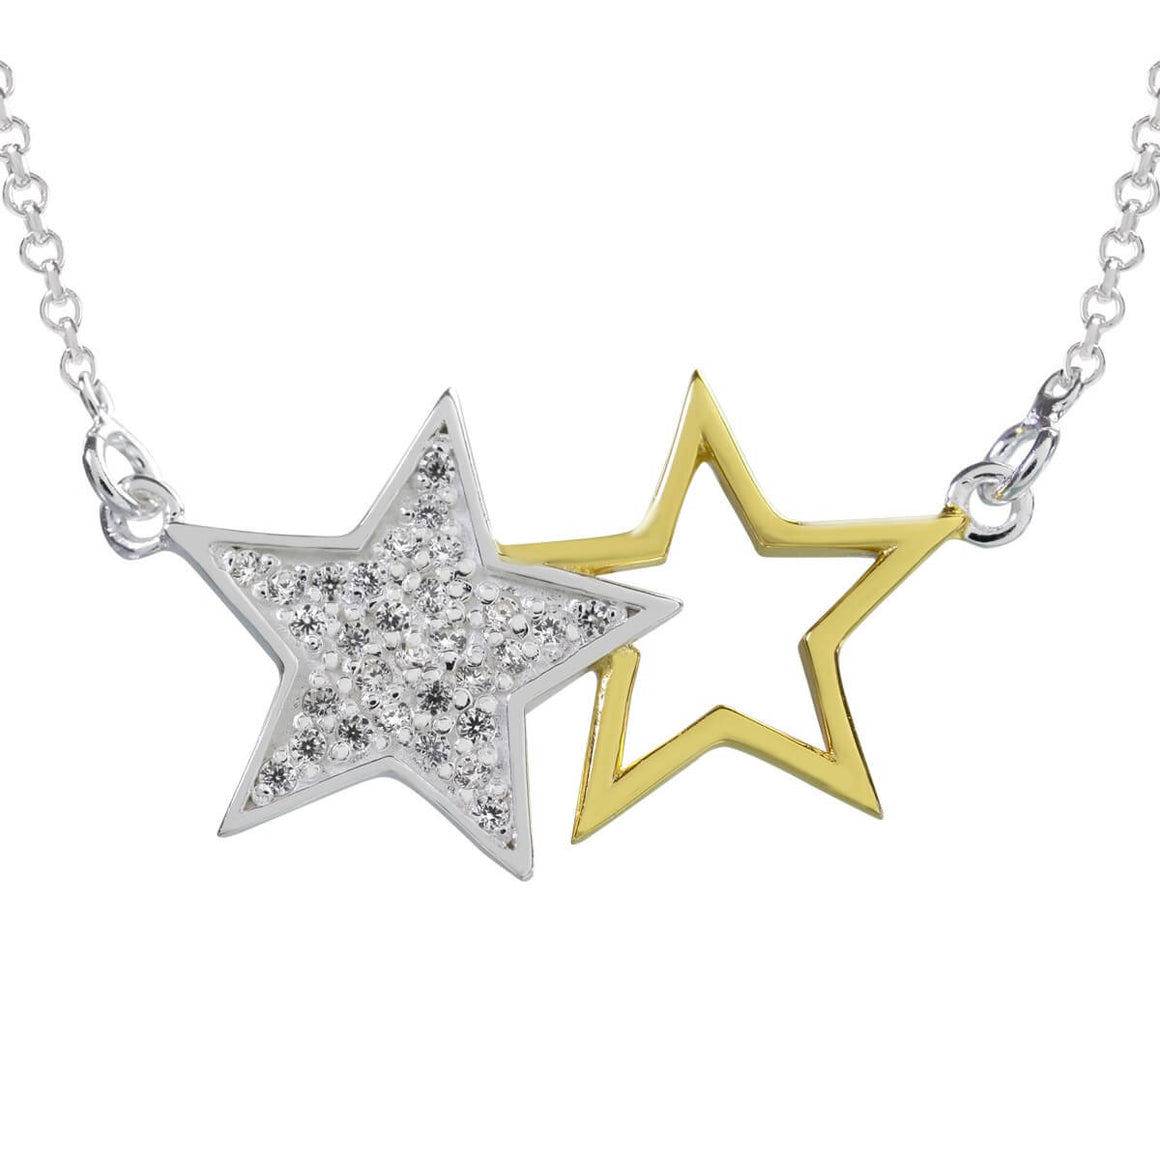 Sophie Oliver Valencia Double Star Necklace - The Love Trees